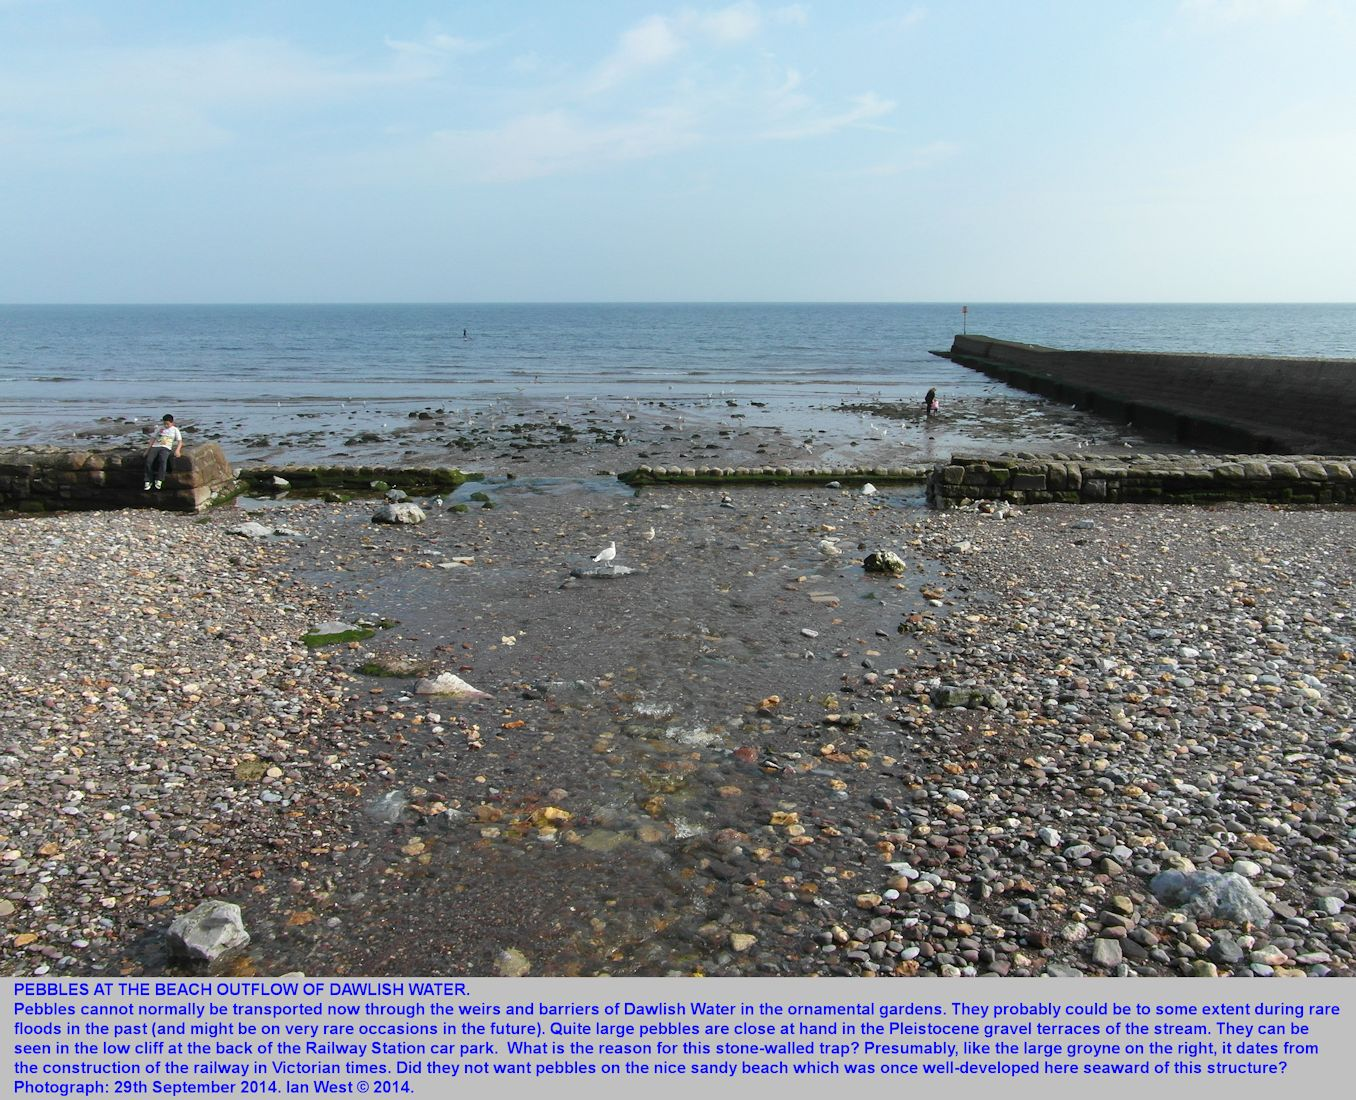 Pebbles present at the outflow of Dawlish Water, Dawlish, Devon, 29th September 2014